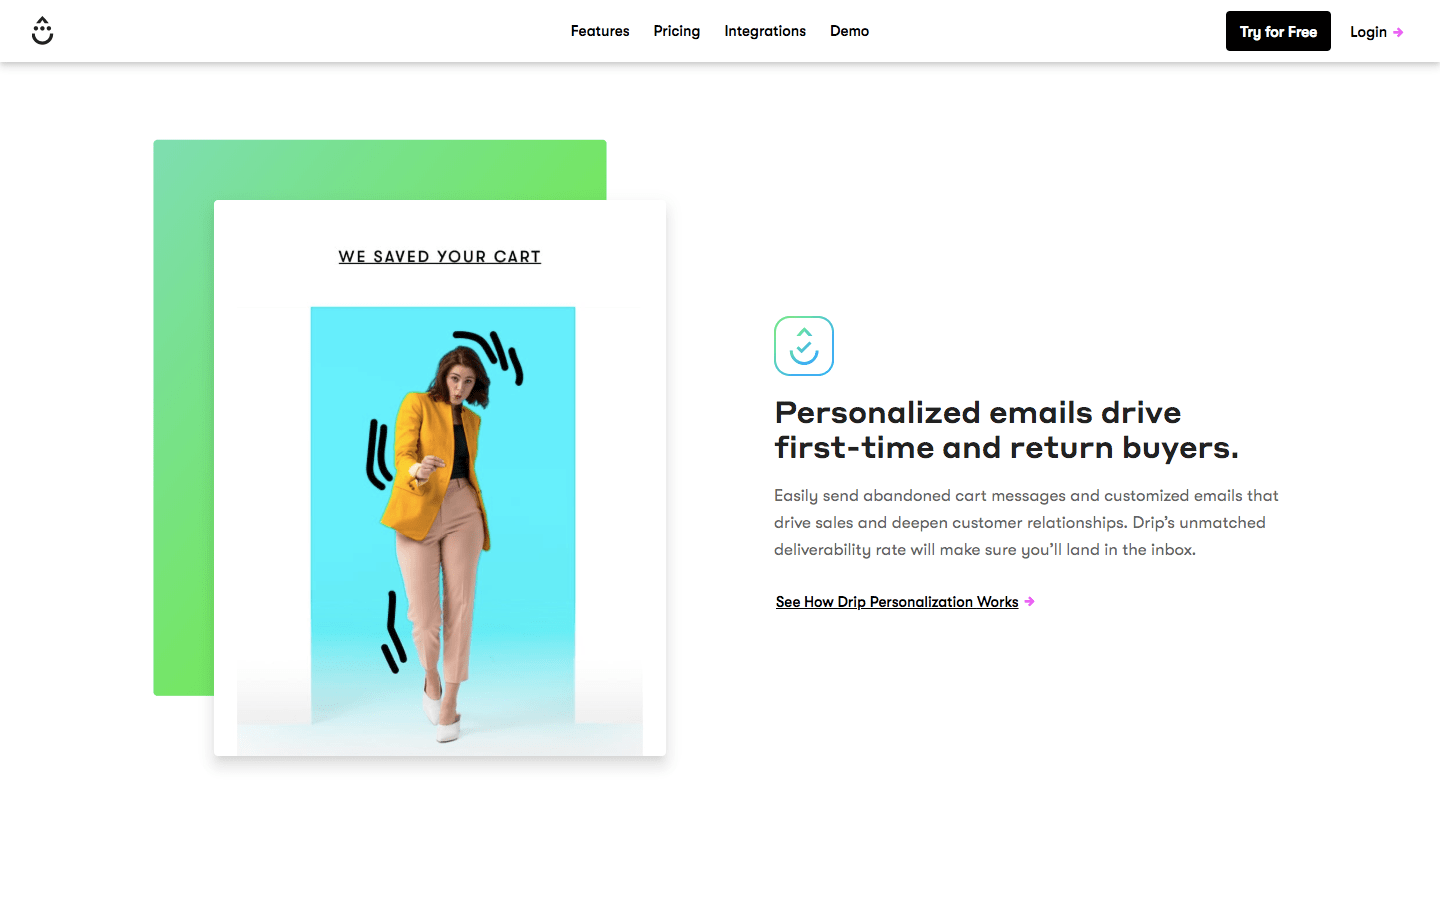 Personalisation section of Drip's homepage